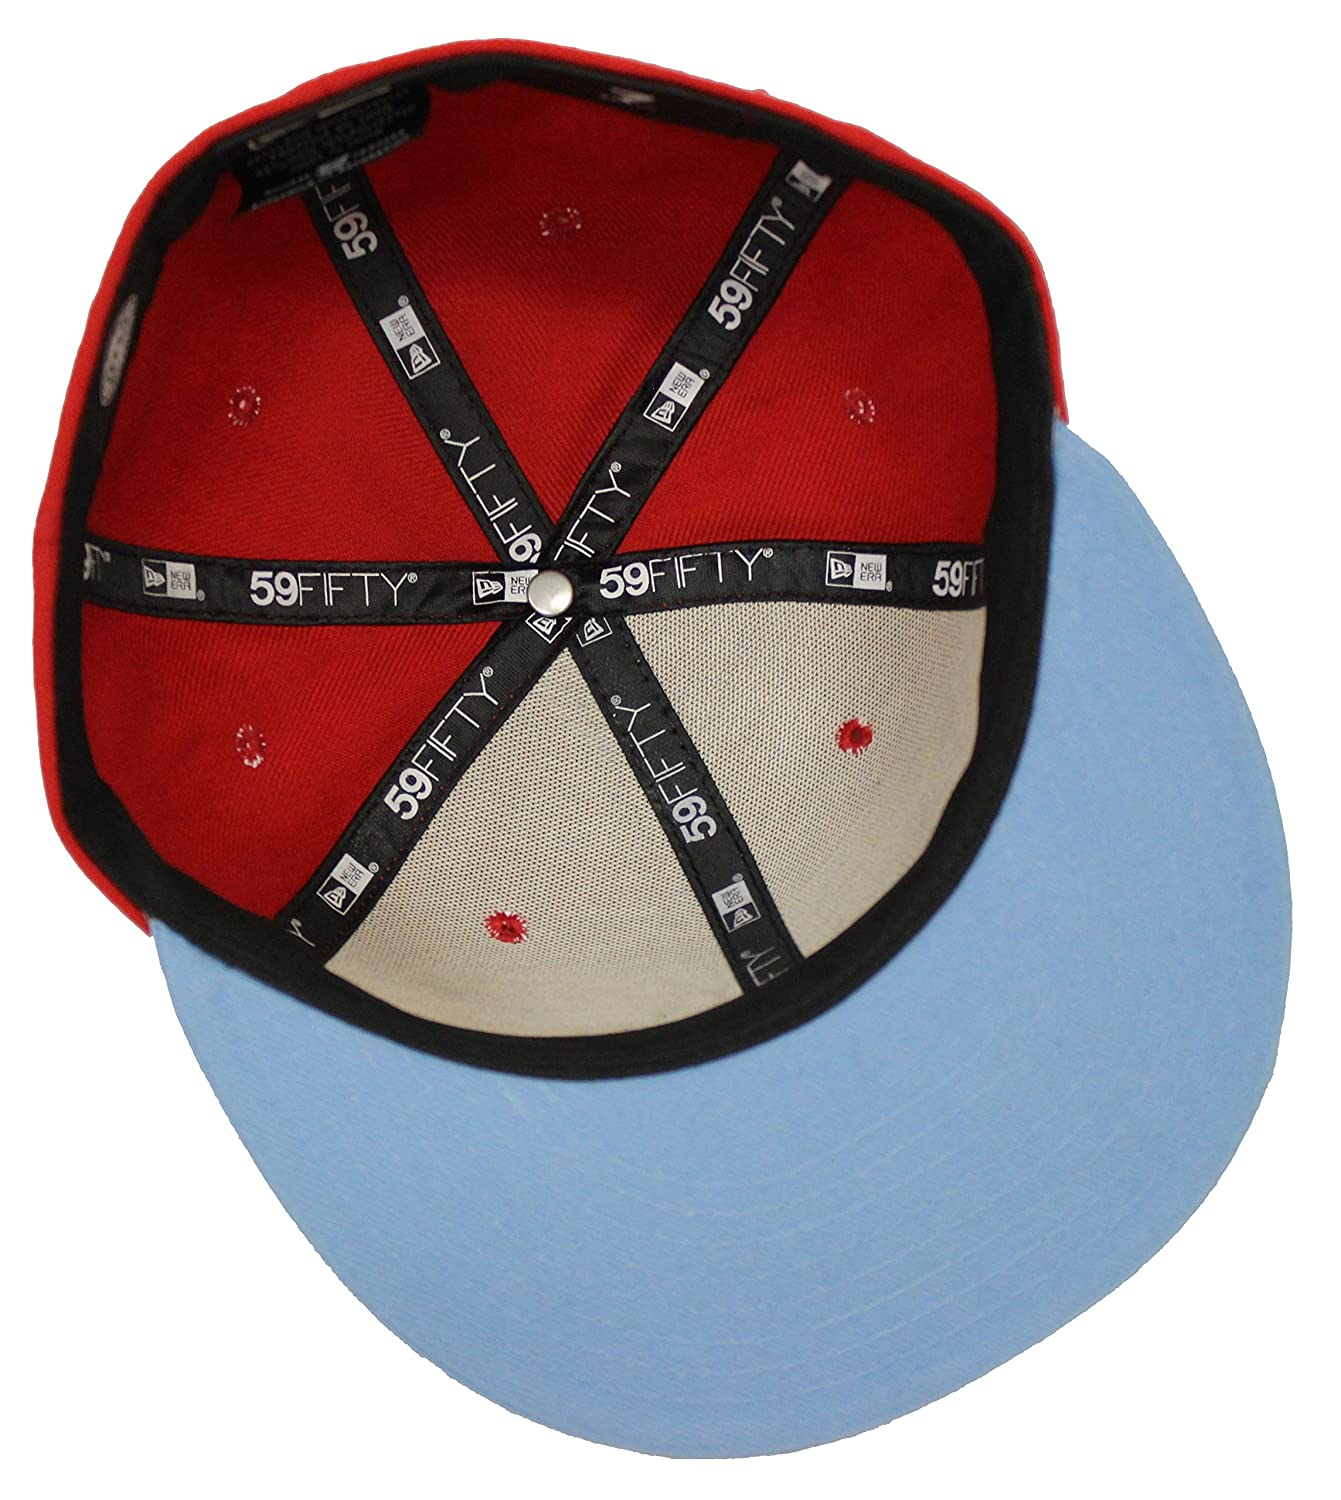 ... low cost new era 59fifty wonder woman red blue fitted cap at amazon  mens clothing store 5de8f0200f7d